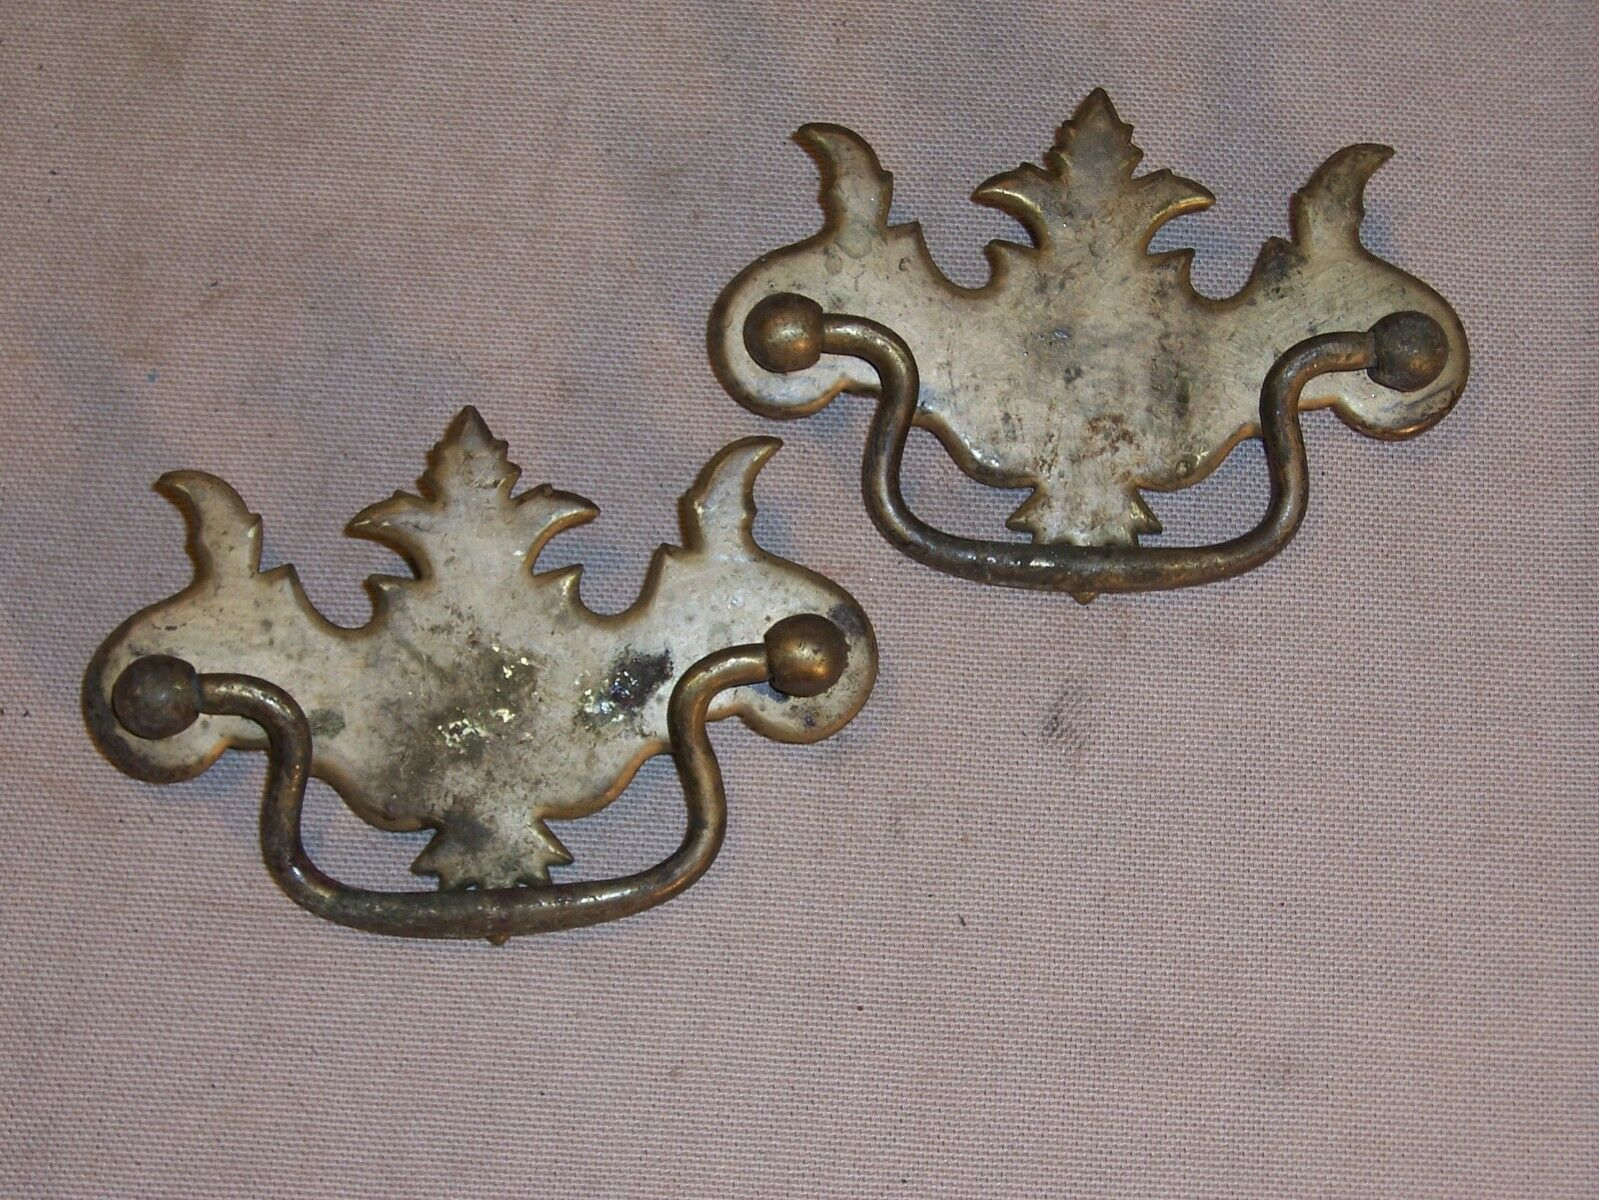 Antique Drawer Pull Handle Ornate Victorian Replacement Part Hardware Dresser